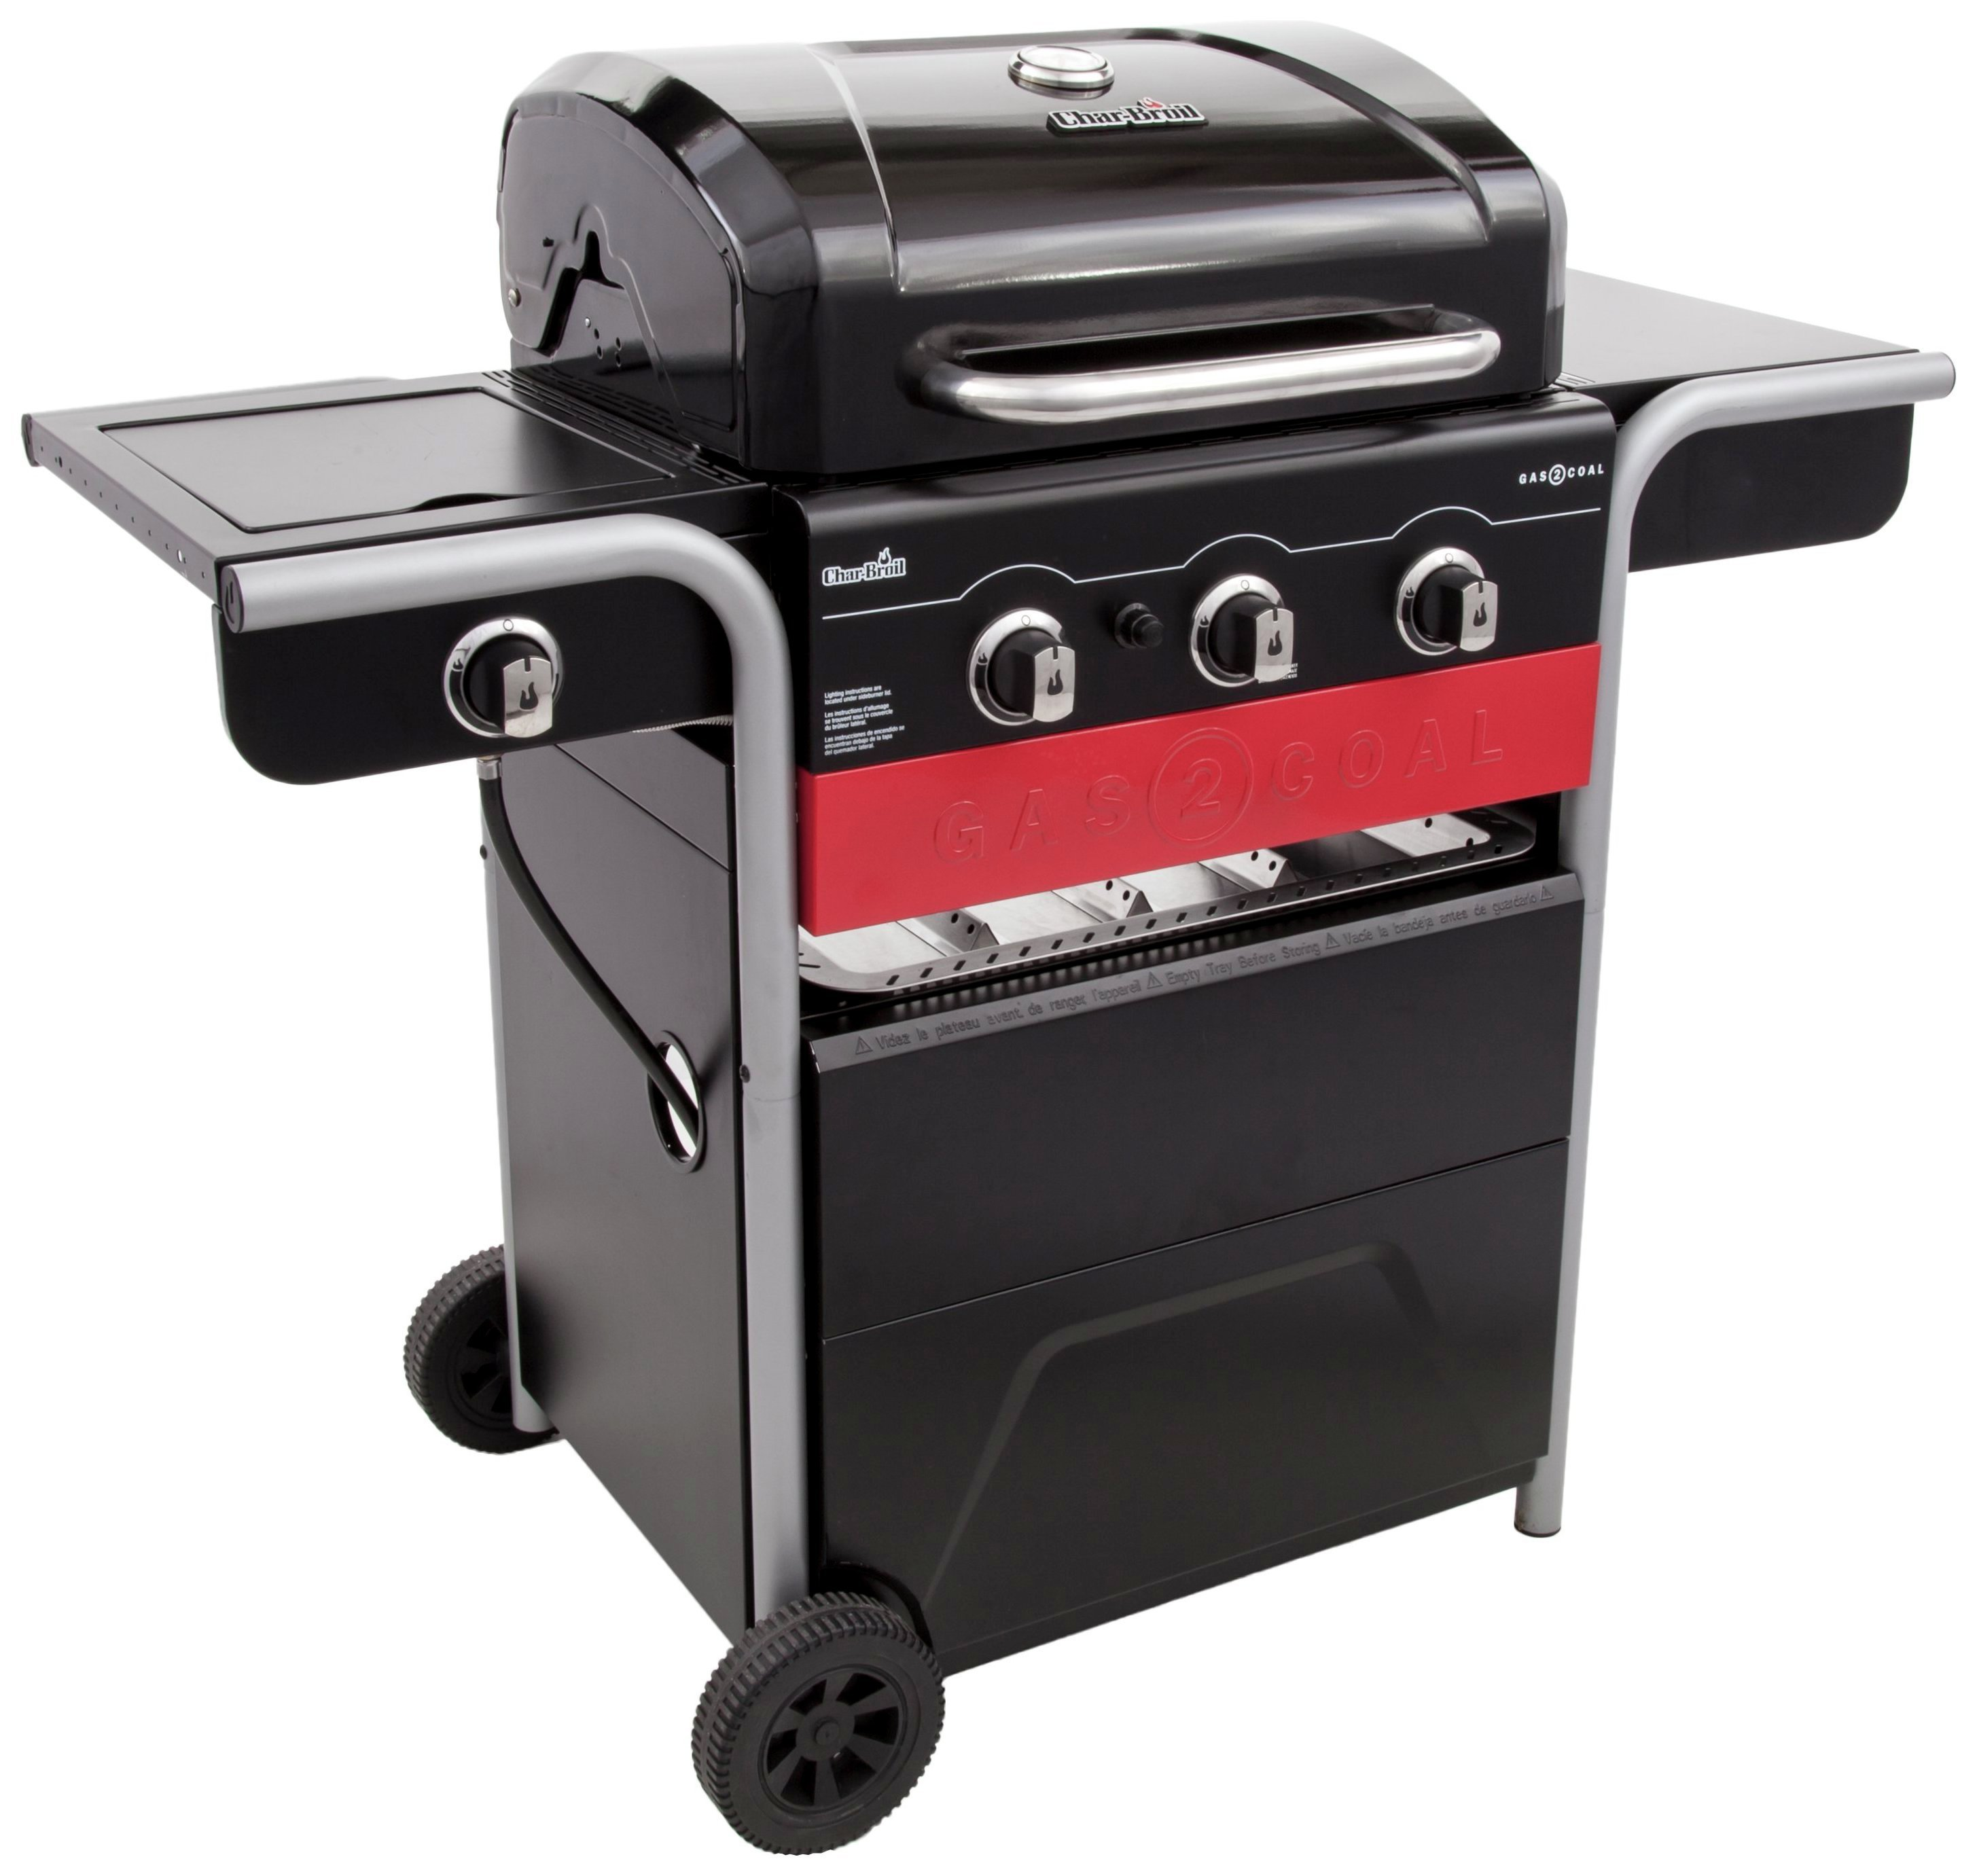 Image of Char-Broil Gas2Coal Hybrid - 3 Burner Gas & Coal BBQ Grill